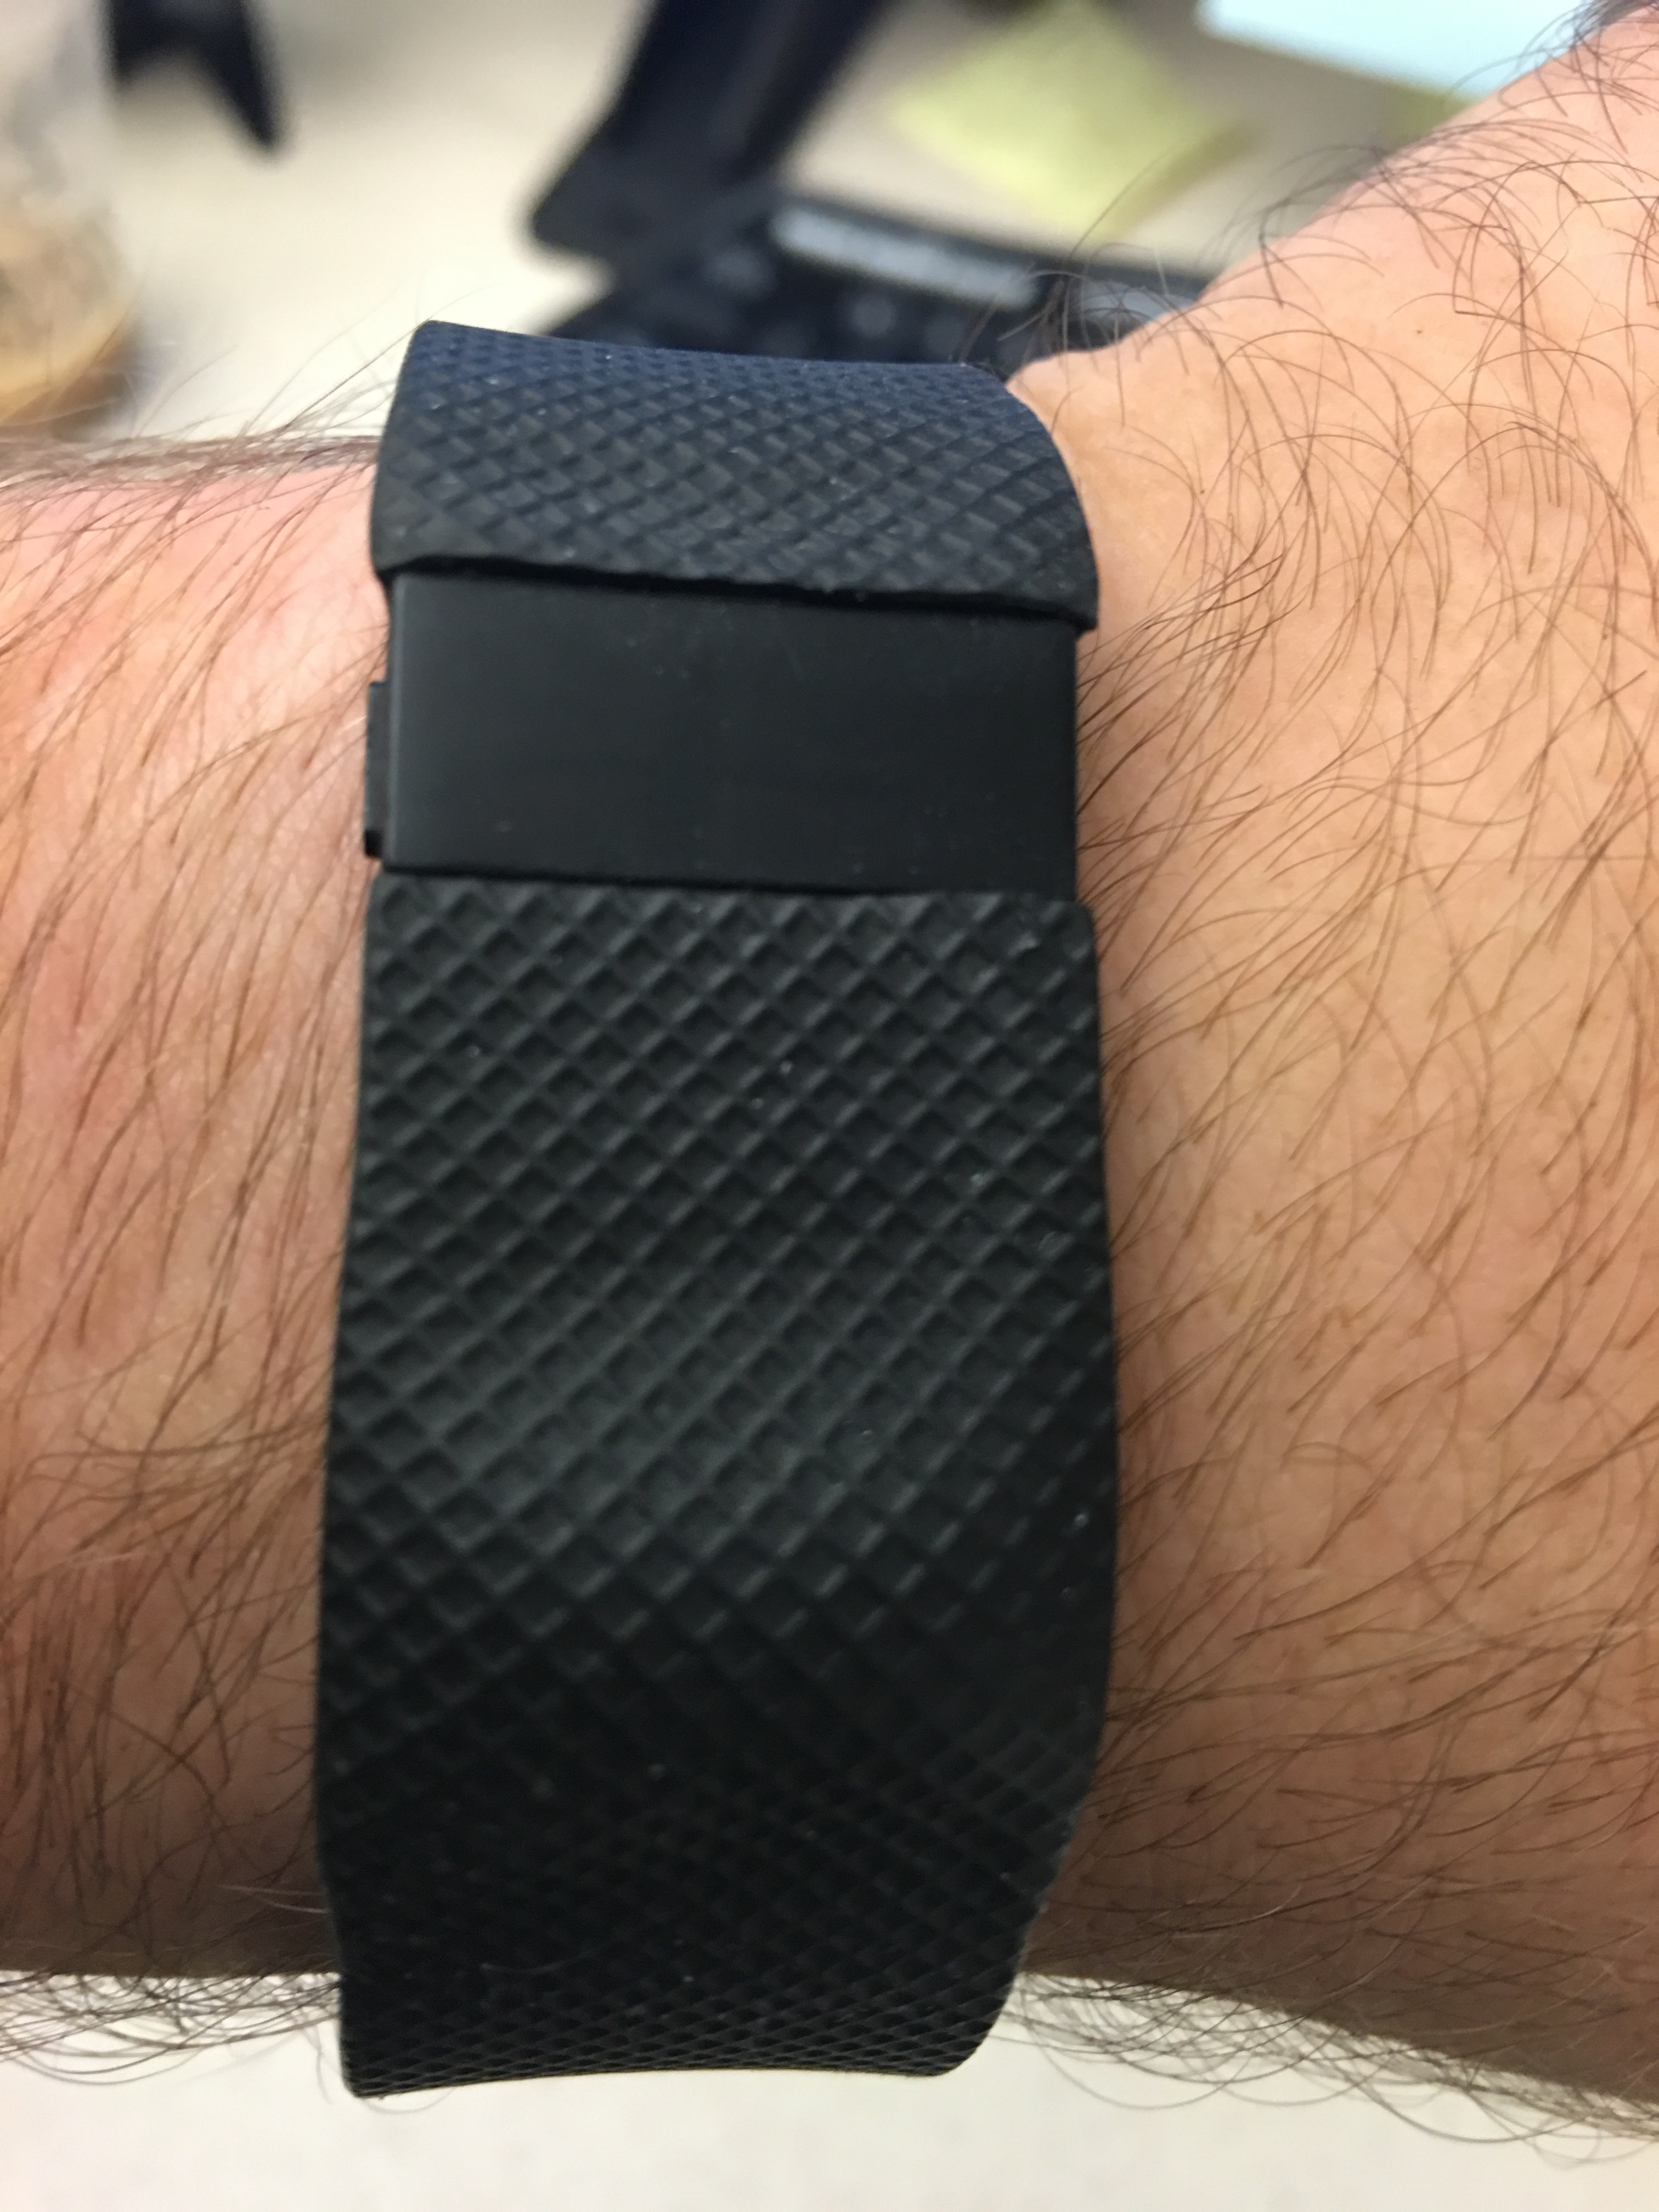 how to fix a fitbit bubble